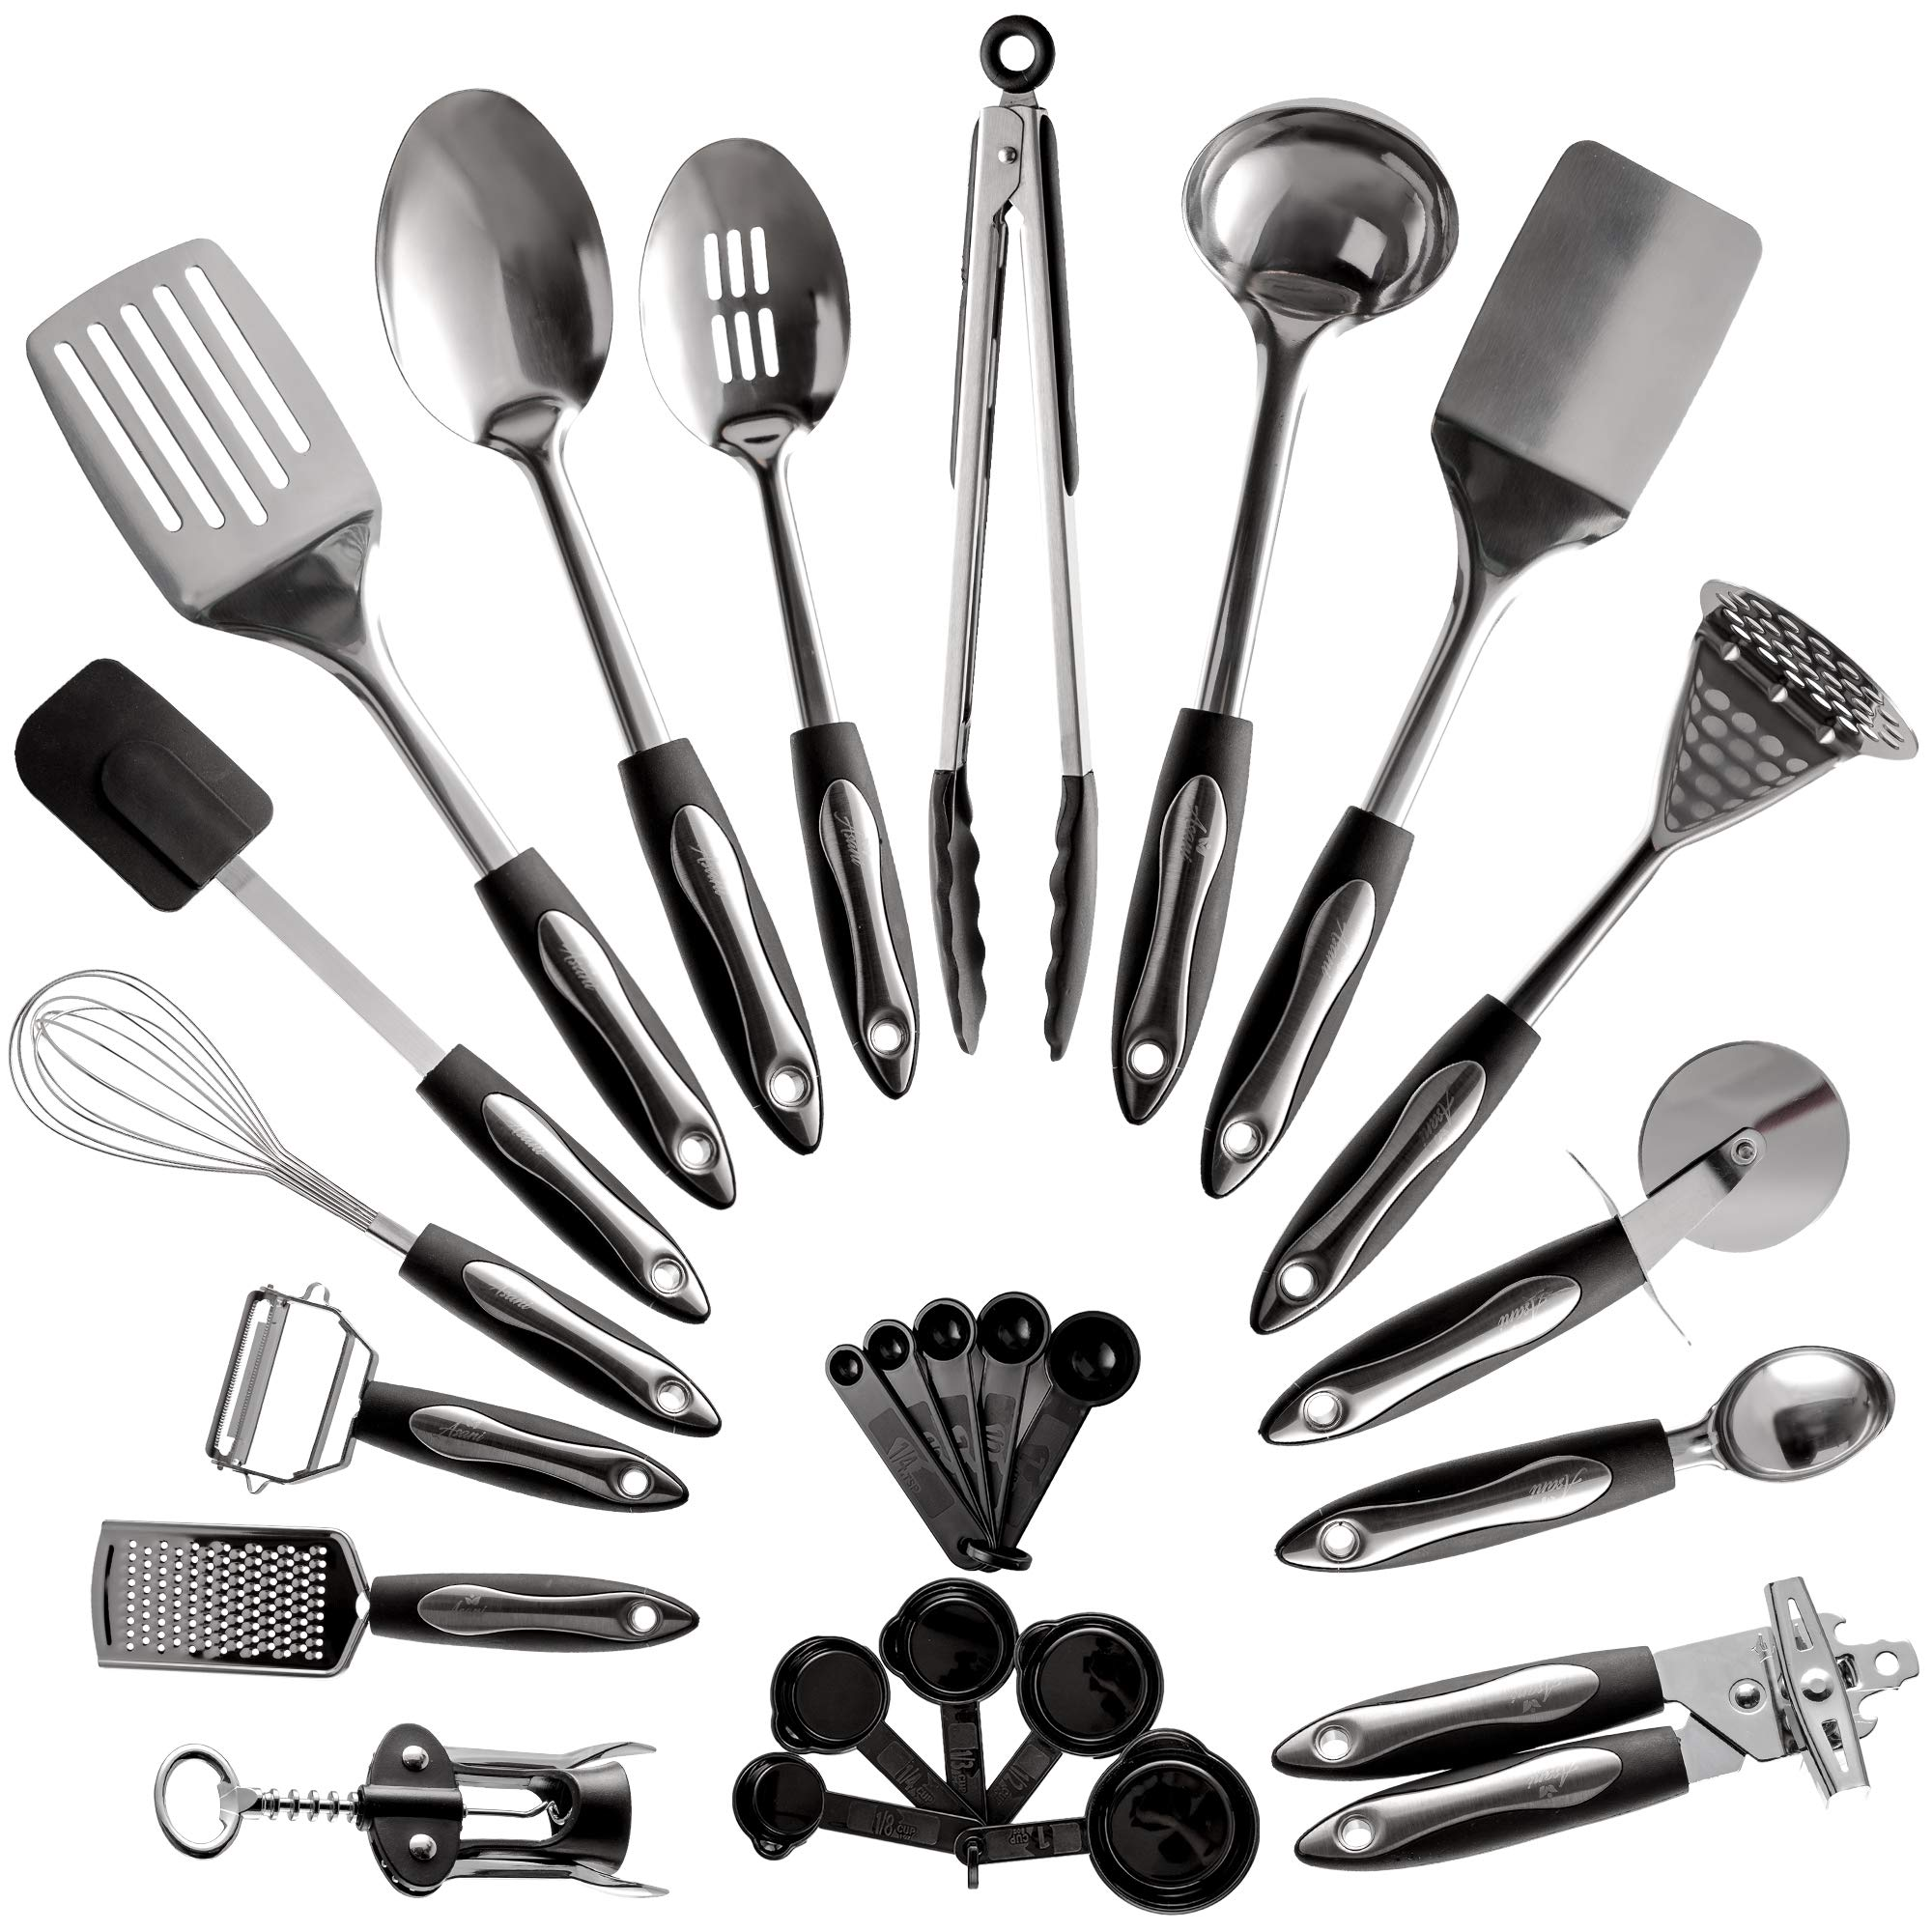 25-Piece Stainless Steel Kitchen Utensil Set | Non-Stick Cooking Gadgets  and Tools Kit | Durable Dishwasher-Safe Cookware Set | Kitchenware Gift  Idea, ...